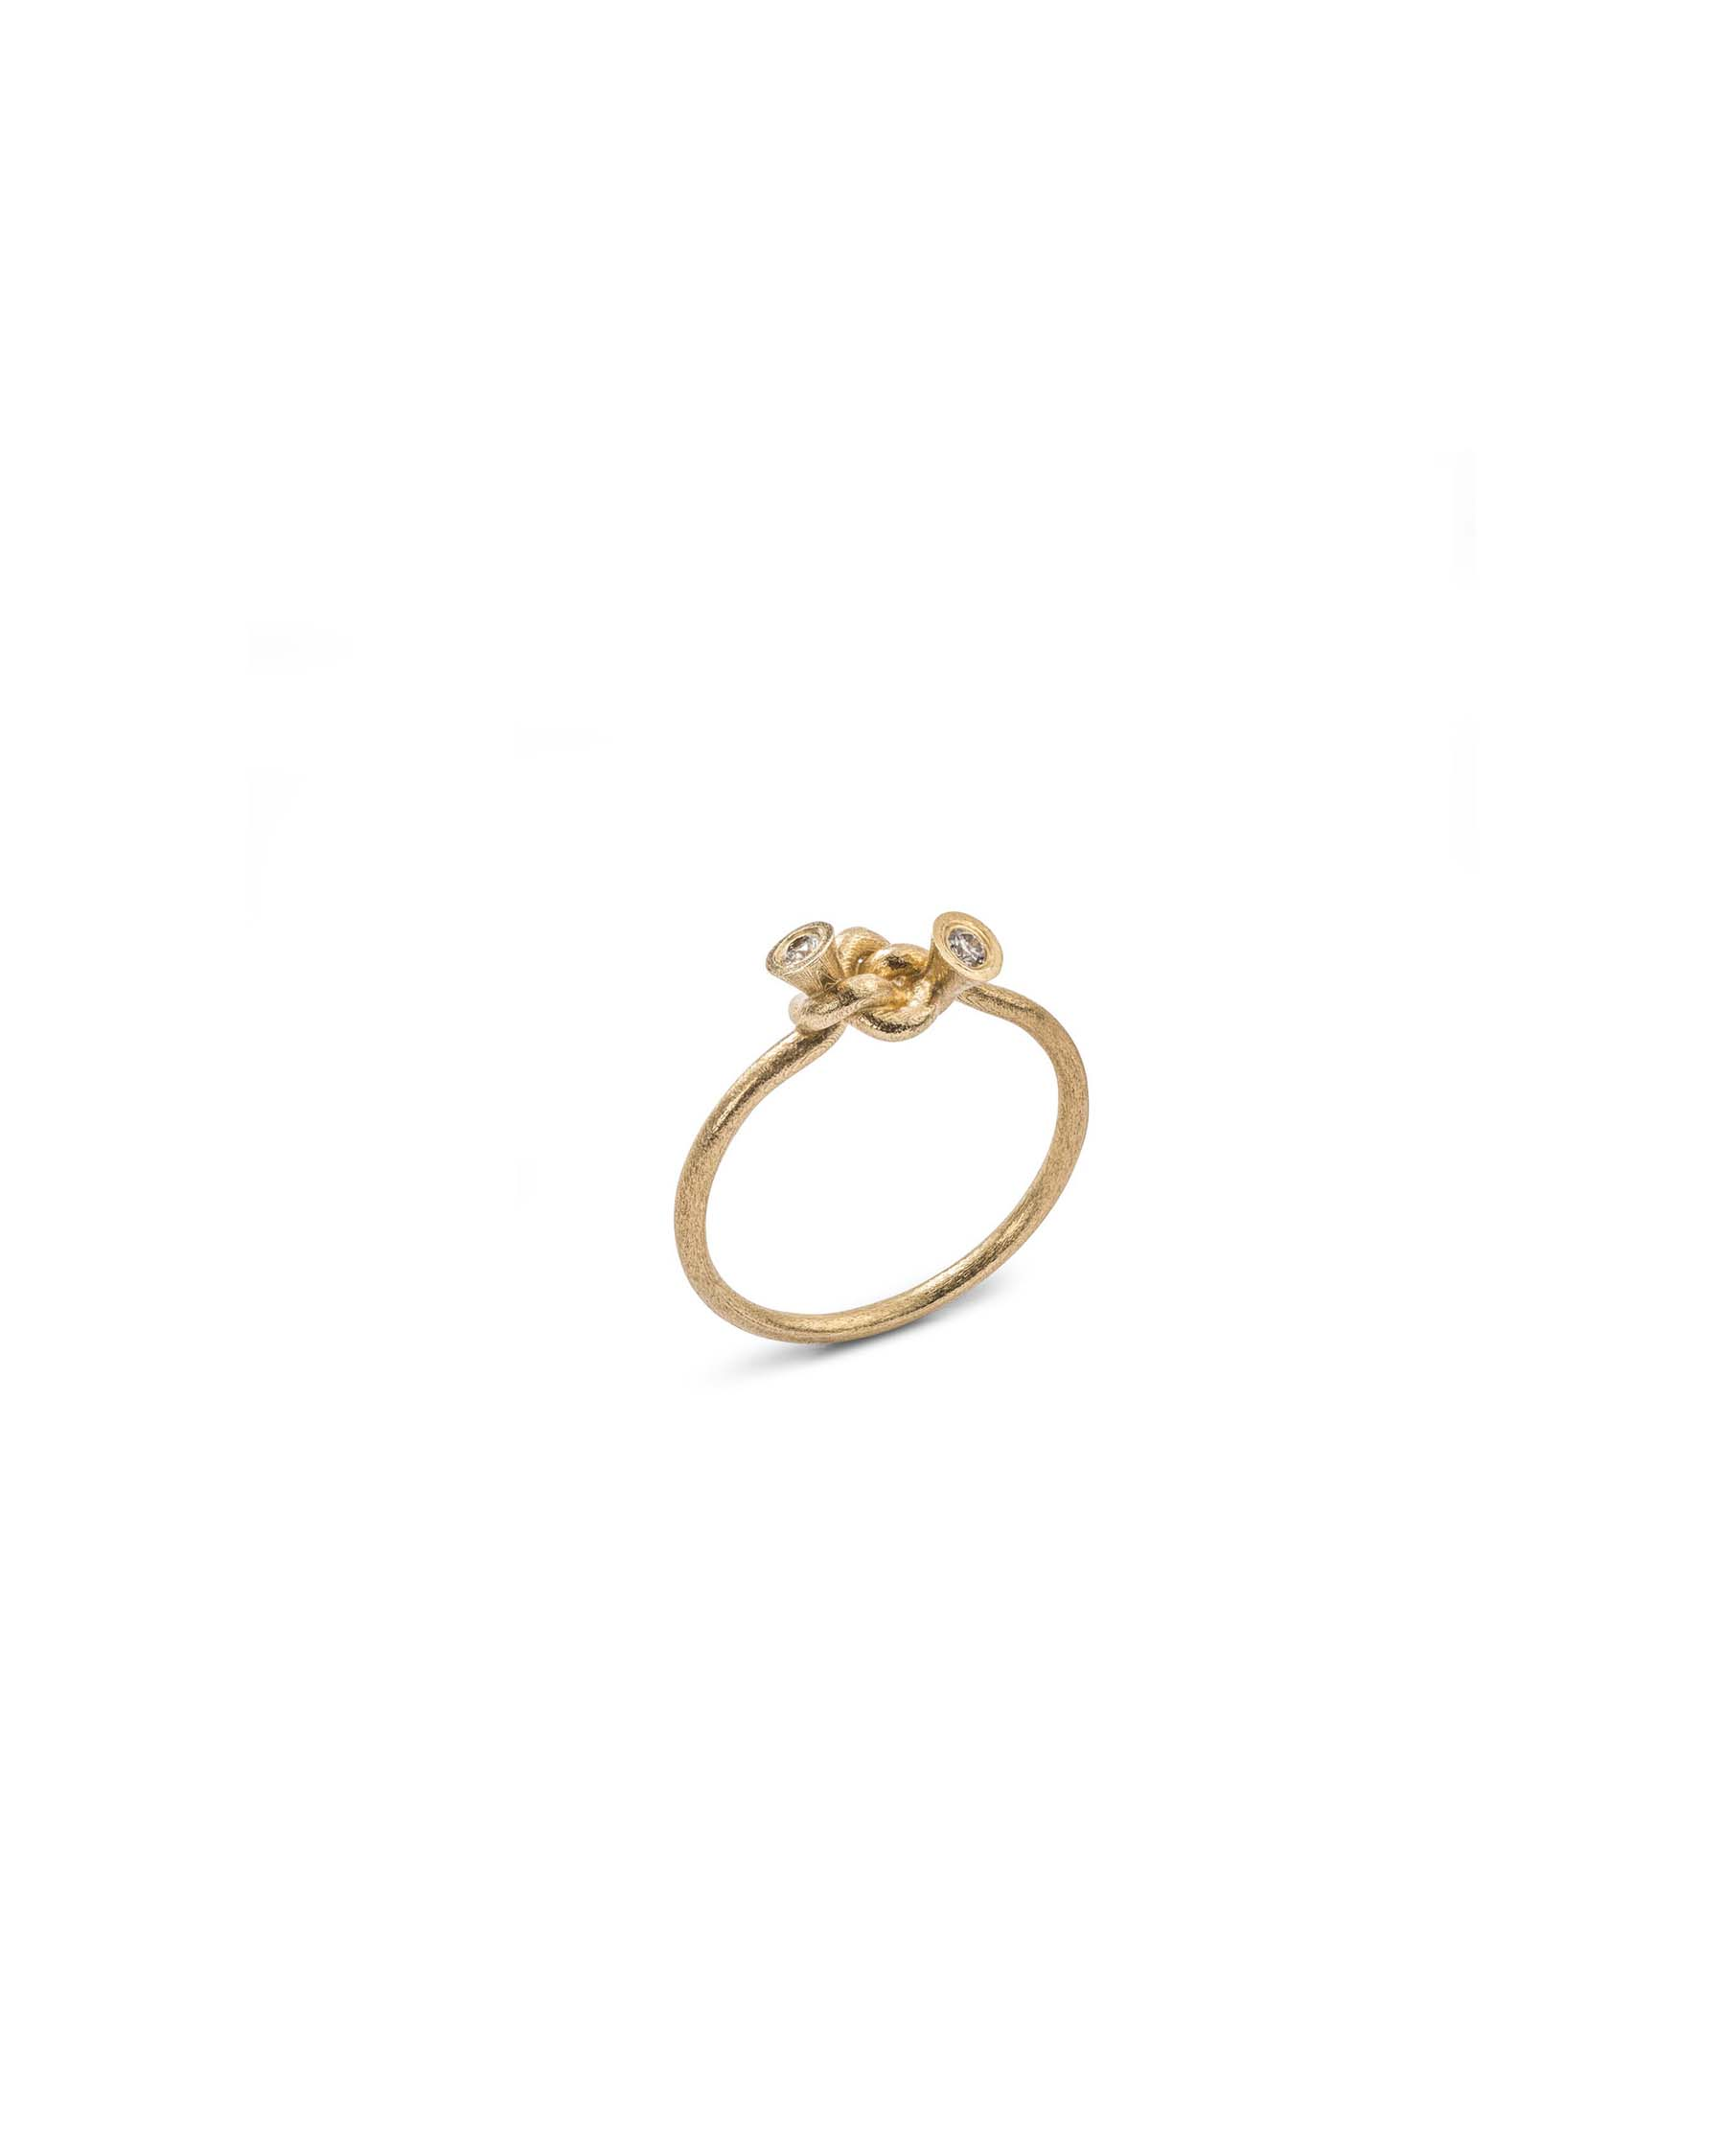 Simple gold knot ring